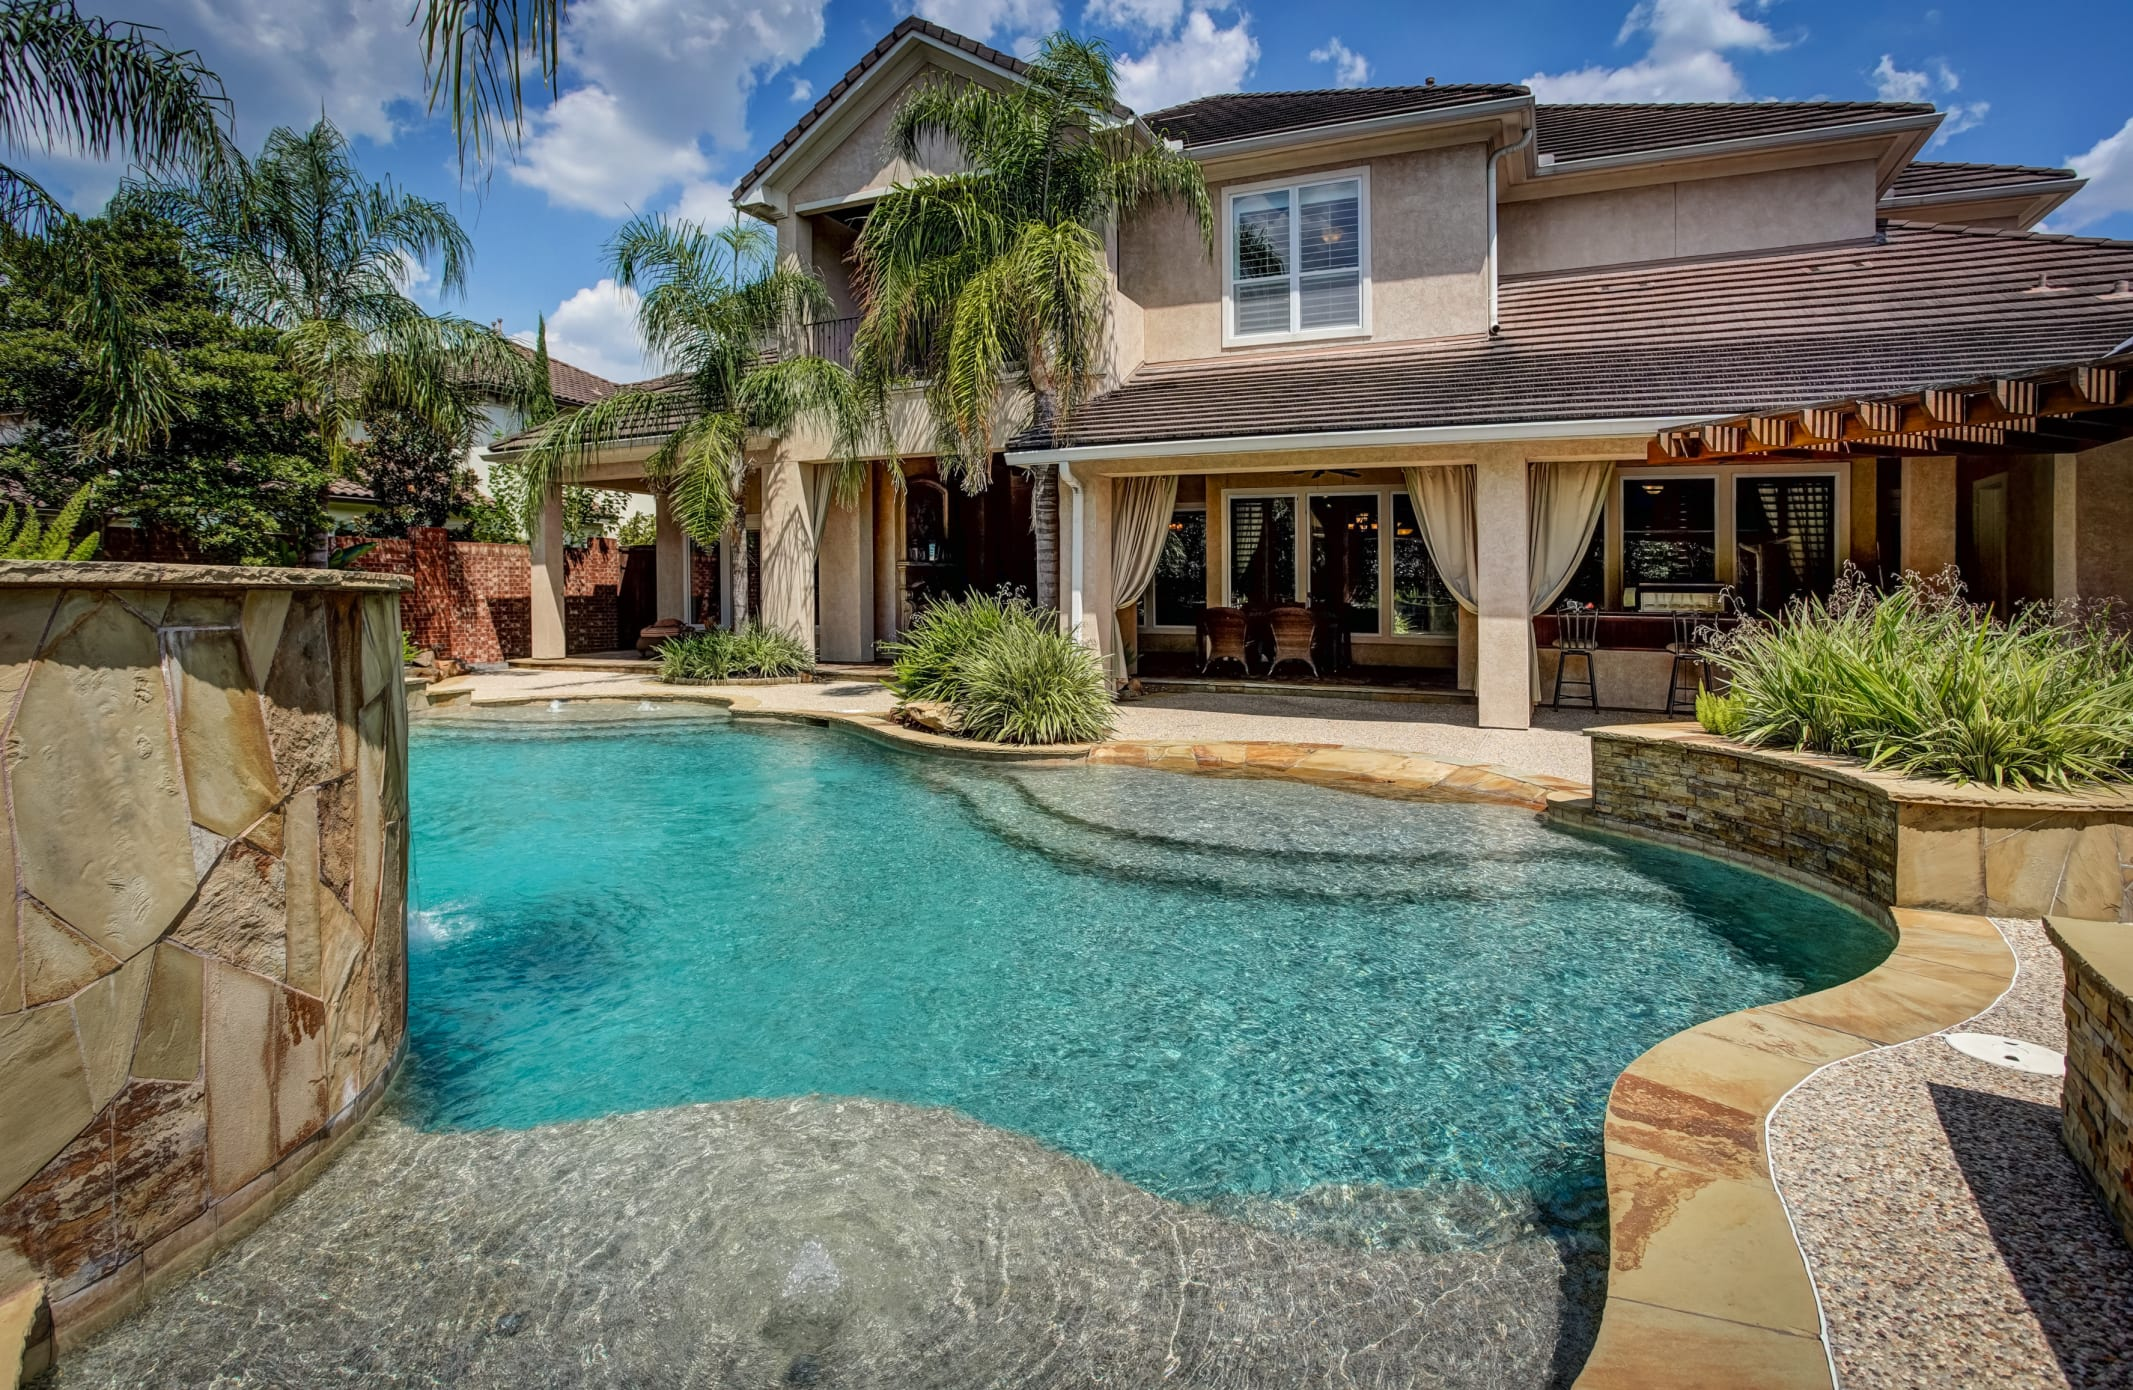 11507 Bistro Lane, Royal Oaks Country Club - This Is Houston Living At Its Best. Don't Delay, This Royal Oaks Home Is Breathtaking And Won't Last Long. Not Just A Home, It's A Lifestyle. Claim Your Piece Of Paradise Today!